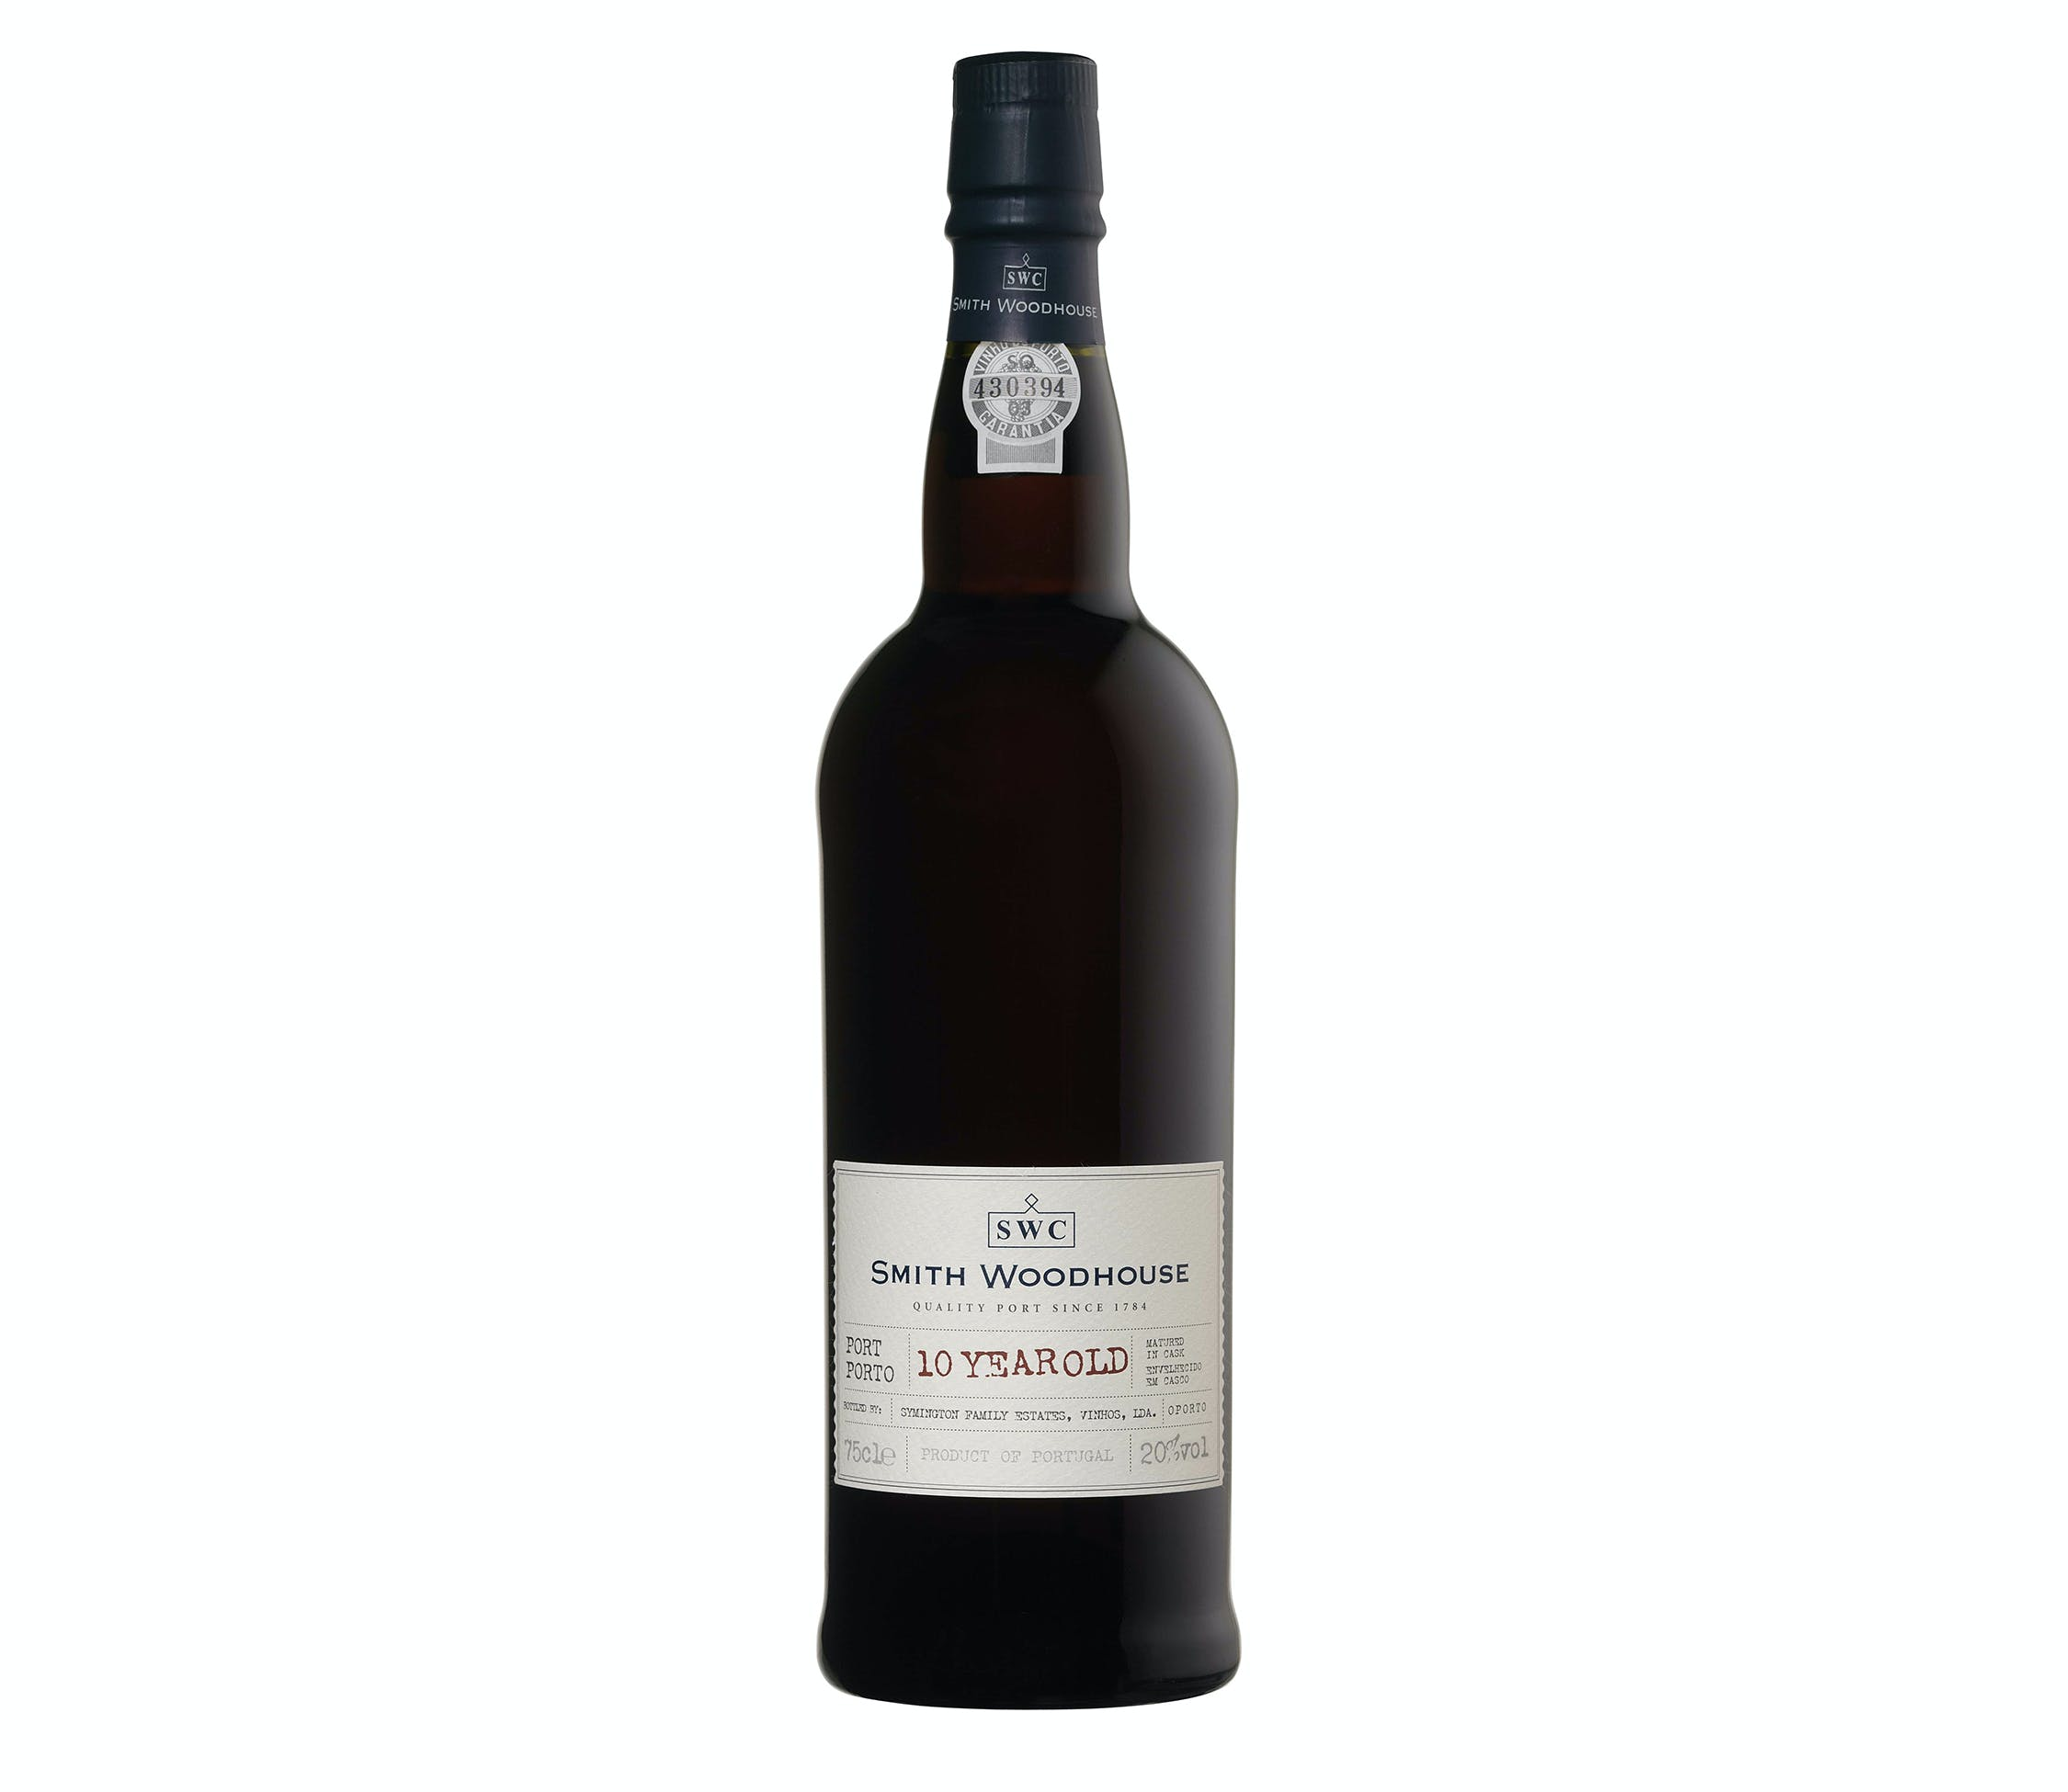 Smith Woodhouse 10year old Tawny Port